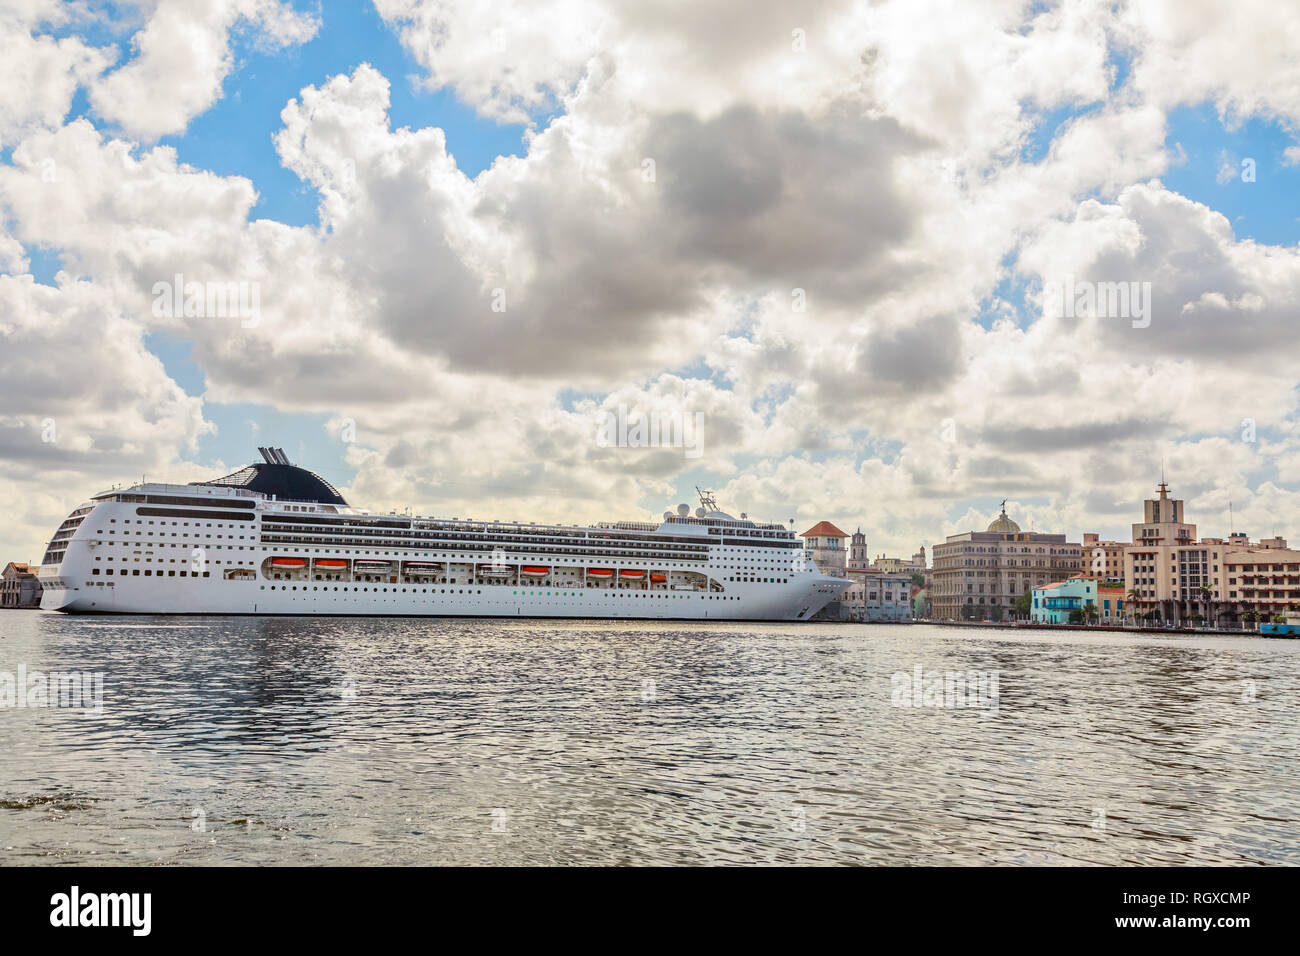 Big touristic cruise ship docked in port of Havana with blue sky and clouds panorama, Cuba - Stock Image